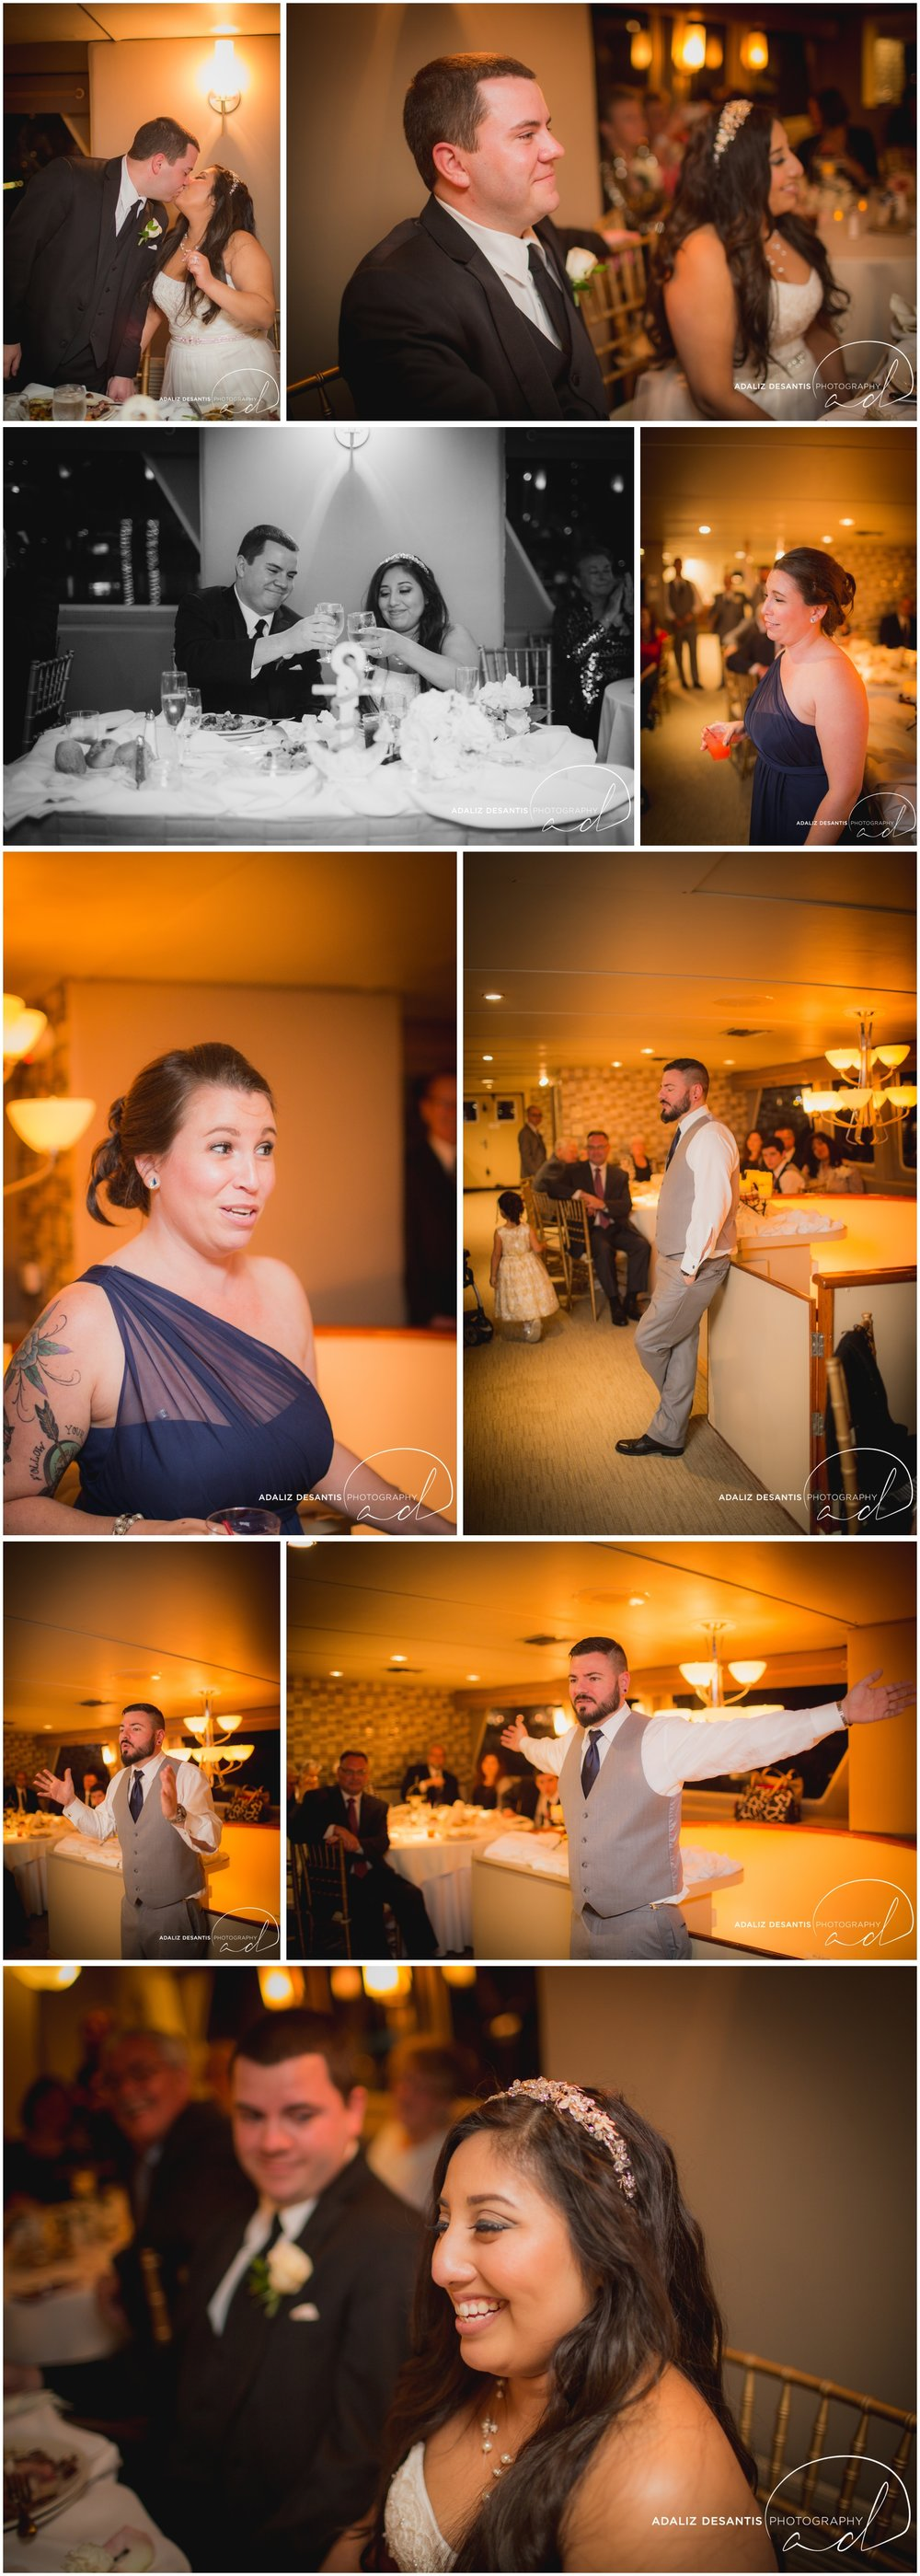 Taylor and amanda Indiana Fort Lauderdale Sun Dream yacht charter wedding 21